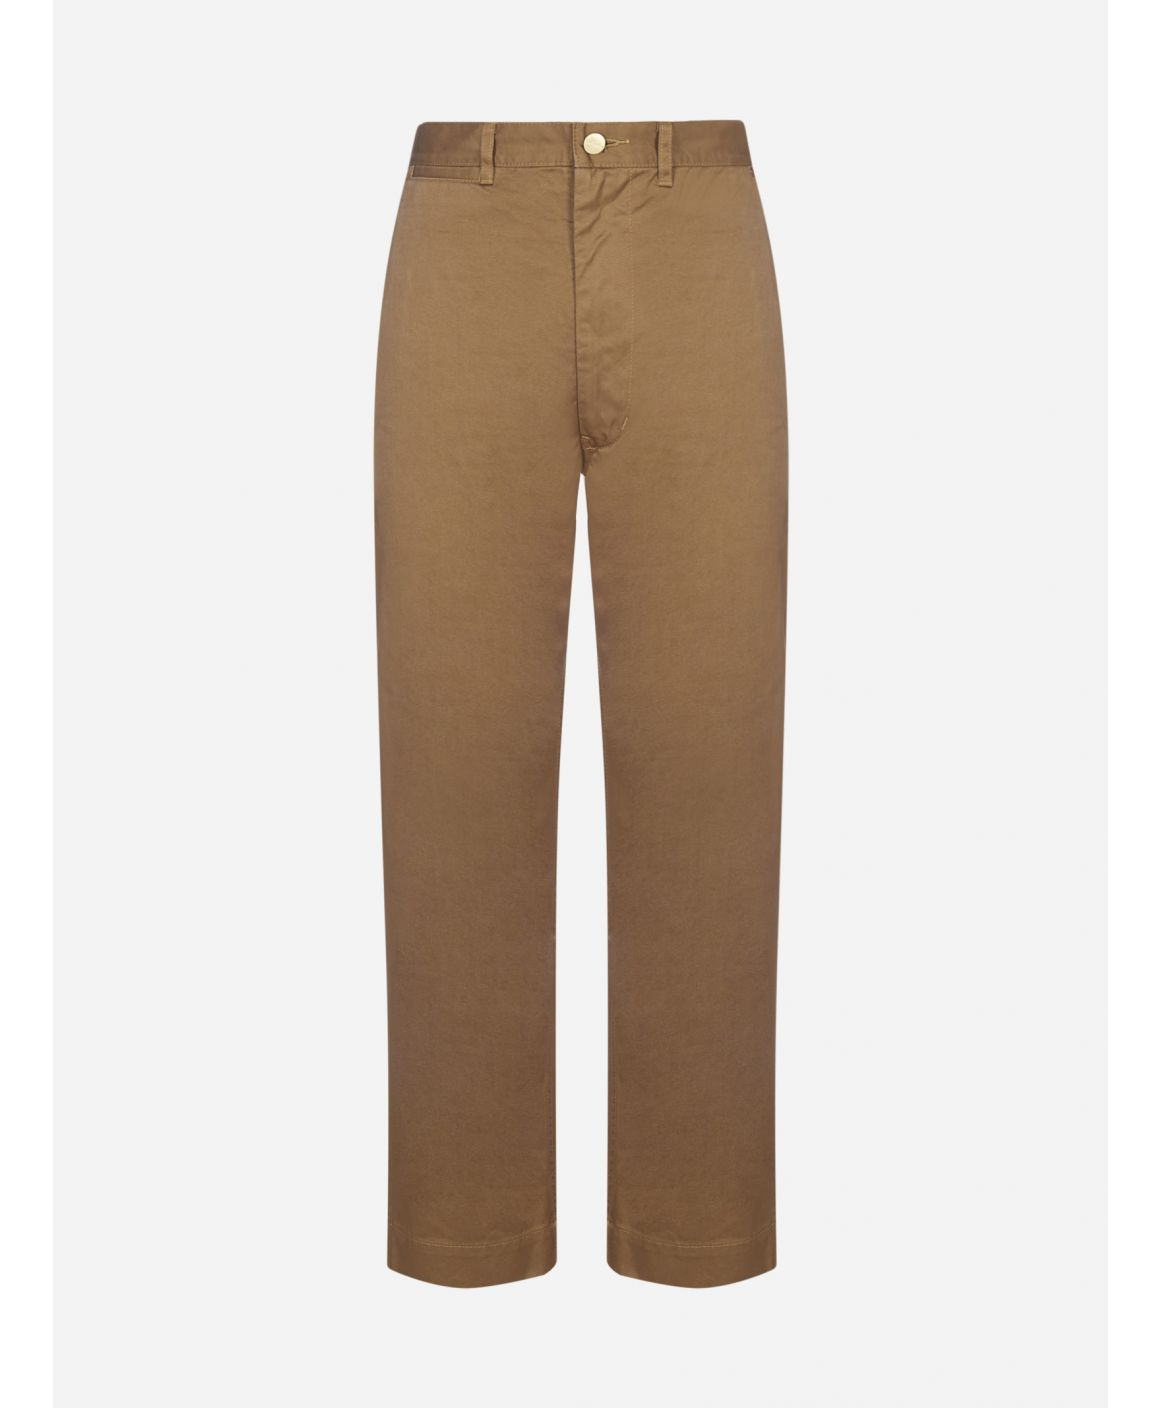 X Carhartt cotton trousers